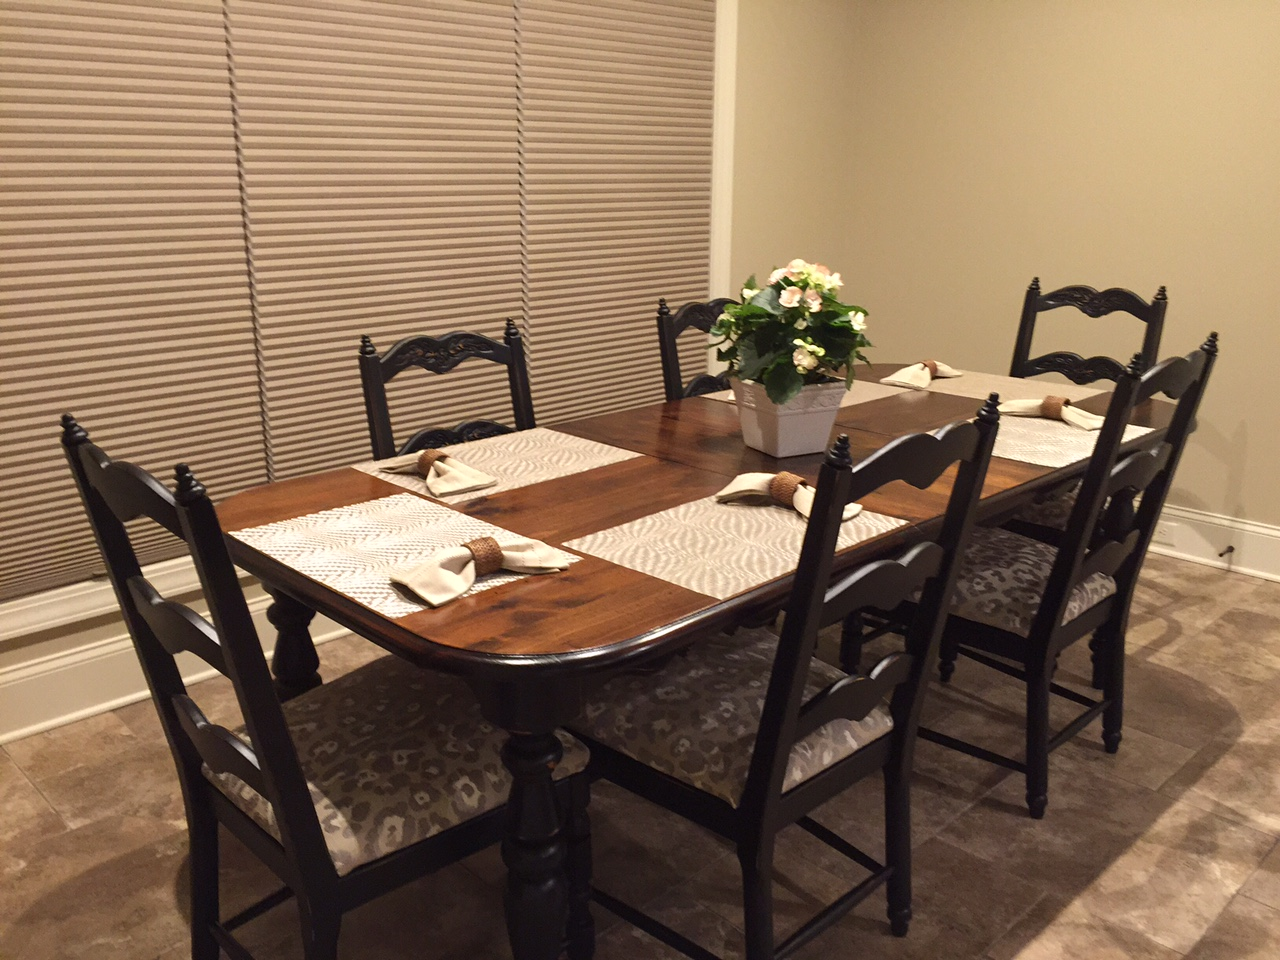 Refinishing Old Dining Room Furniture For New Home | Just Fine Tables